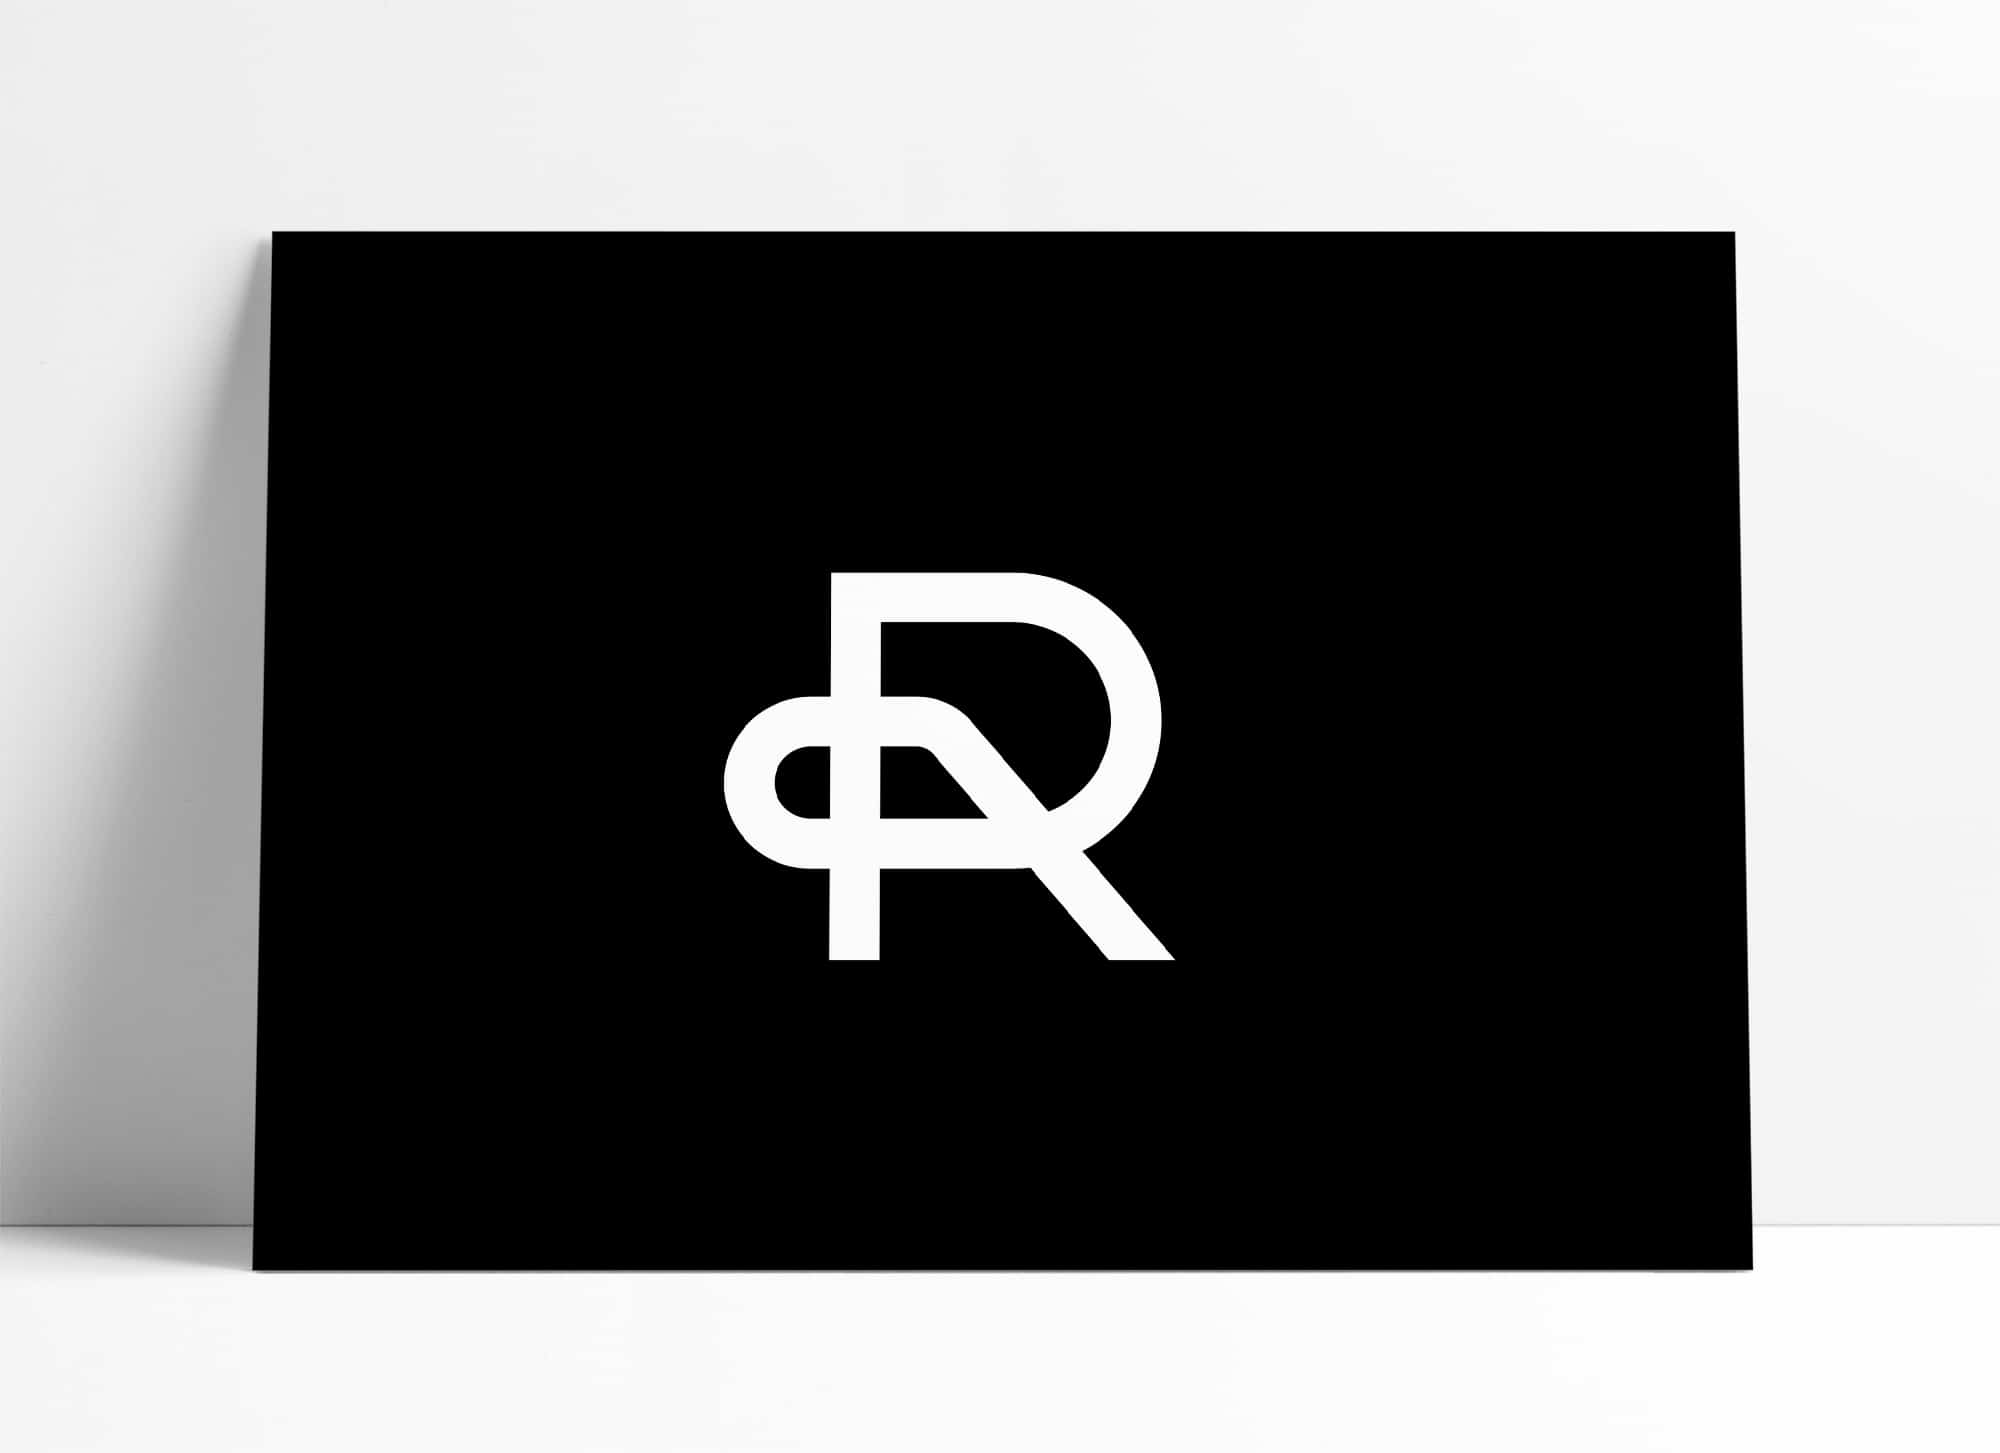 Initials R & P Logo Design for Sale Designed by The Logo Smith